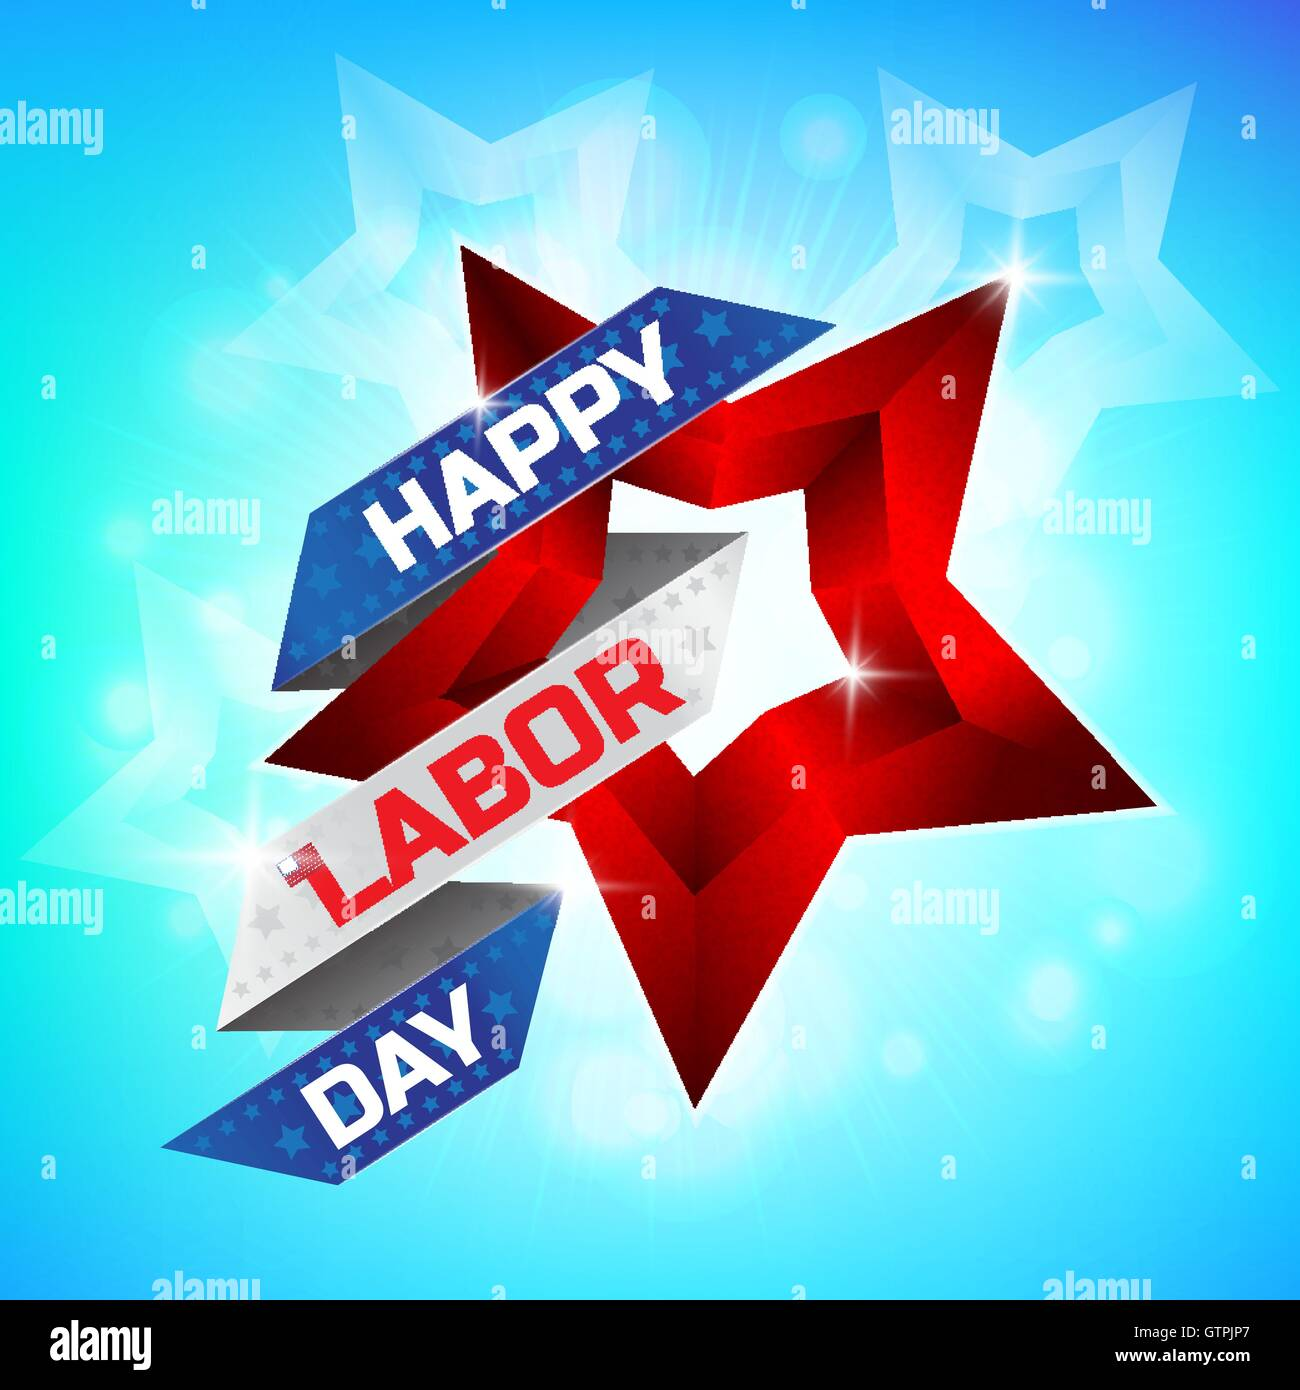 Happy labor day greeting card design use this vector illustration happy labor day greeting card design use this vector illustration for design your website or publications m4hsunfo